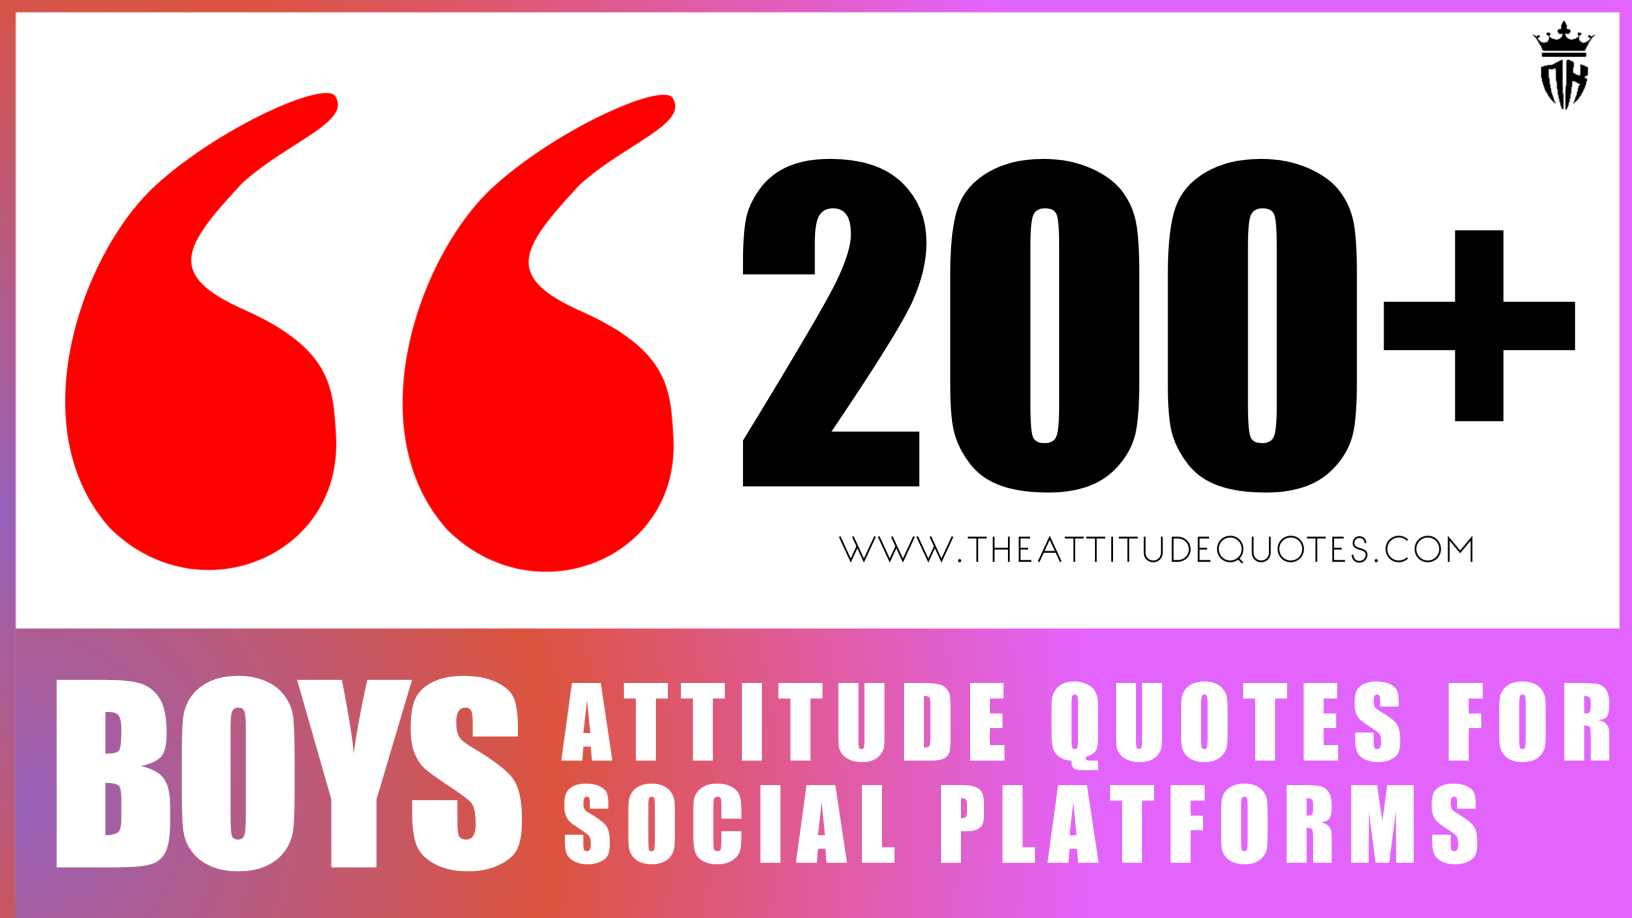 Boys Attitude Quotes In English, best attitude quotes for boys, attitude quotes for boys in english, quotes for boys attitude, attitude quotes for boys, boys attitude status, attitude caption for boys, whatsapp dp for boys attitude, caption for boys attitude, boys attitude caption , bad boy status, cute boy status in english, punjabi status for boys, cool status for boys, attitude status for boys in english, single boy status, boys attitude status in english, attitude caption for instagram for boys, punjabi attitude status for boys, fb status for boys, attitude caption for boys in english,, attitude status in english for boys, boy status in english, single boy shayari, caption for attitude boys, status for boys in english,, swag status for boys, bad boy status in english, attitude quotes for boys in english, attitude quotes in hindi for boy, royal attitude status in hindi for boy, best attitude status for boys, english attitude status for boys, cute boy status in english, cute boy status, status attitude boy, hindi status for boys, single boy attitude status, single boy status in english, attitude status for boys in english, punjabi status attitude boy, handsome boy status for whatsapp, royal status for boys, attitude caption for boys in english, attitude boy status in english, status hindi attitude boy, stylish boy status in english, cute boy attitude status in english